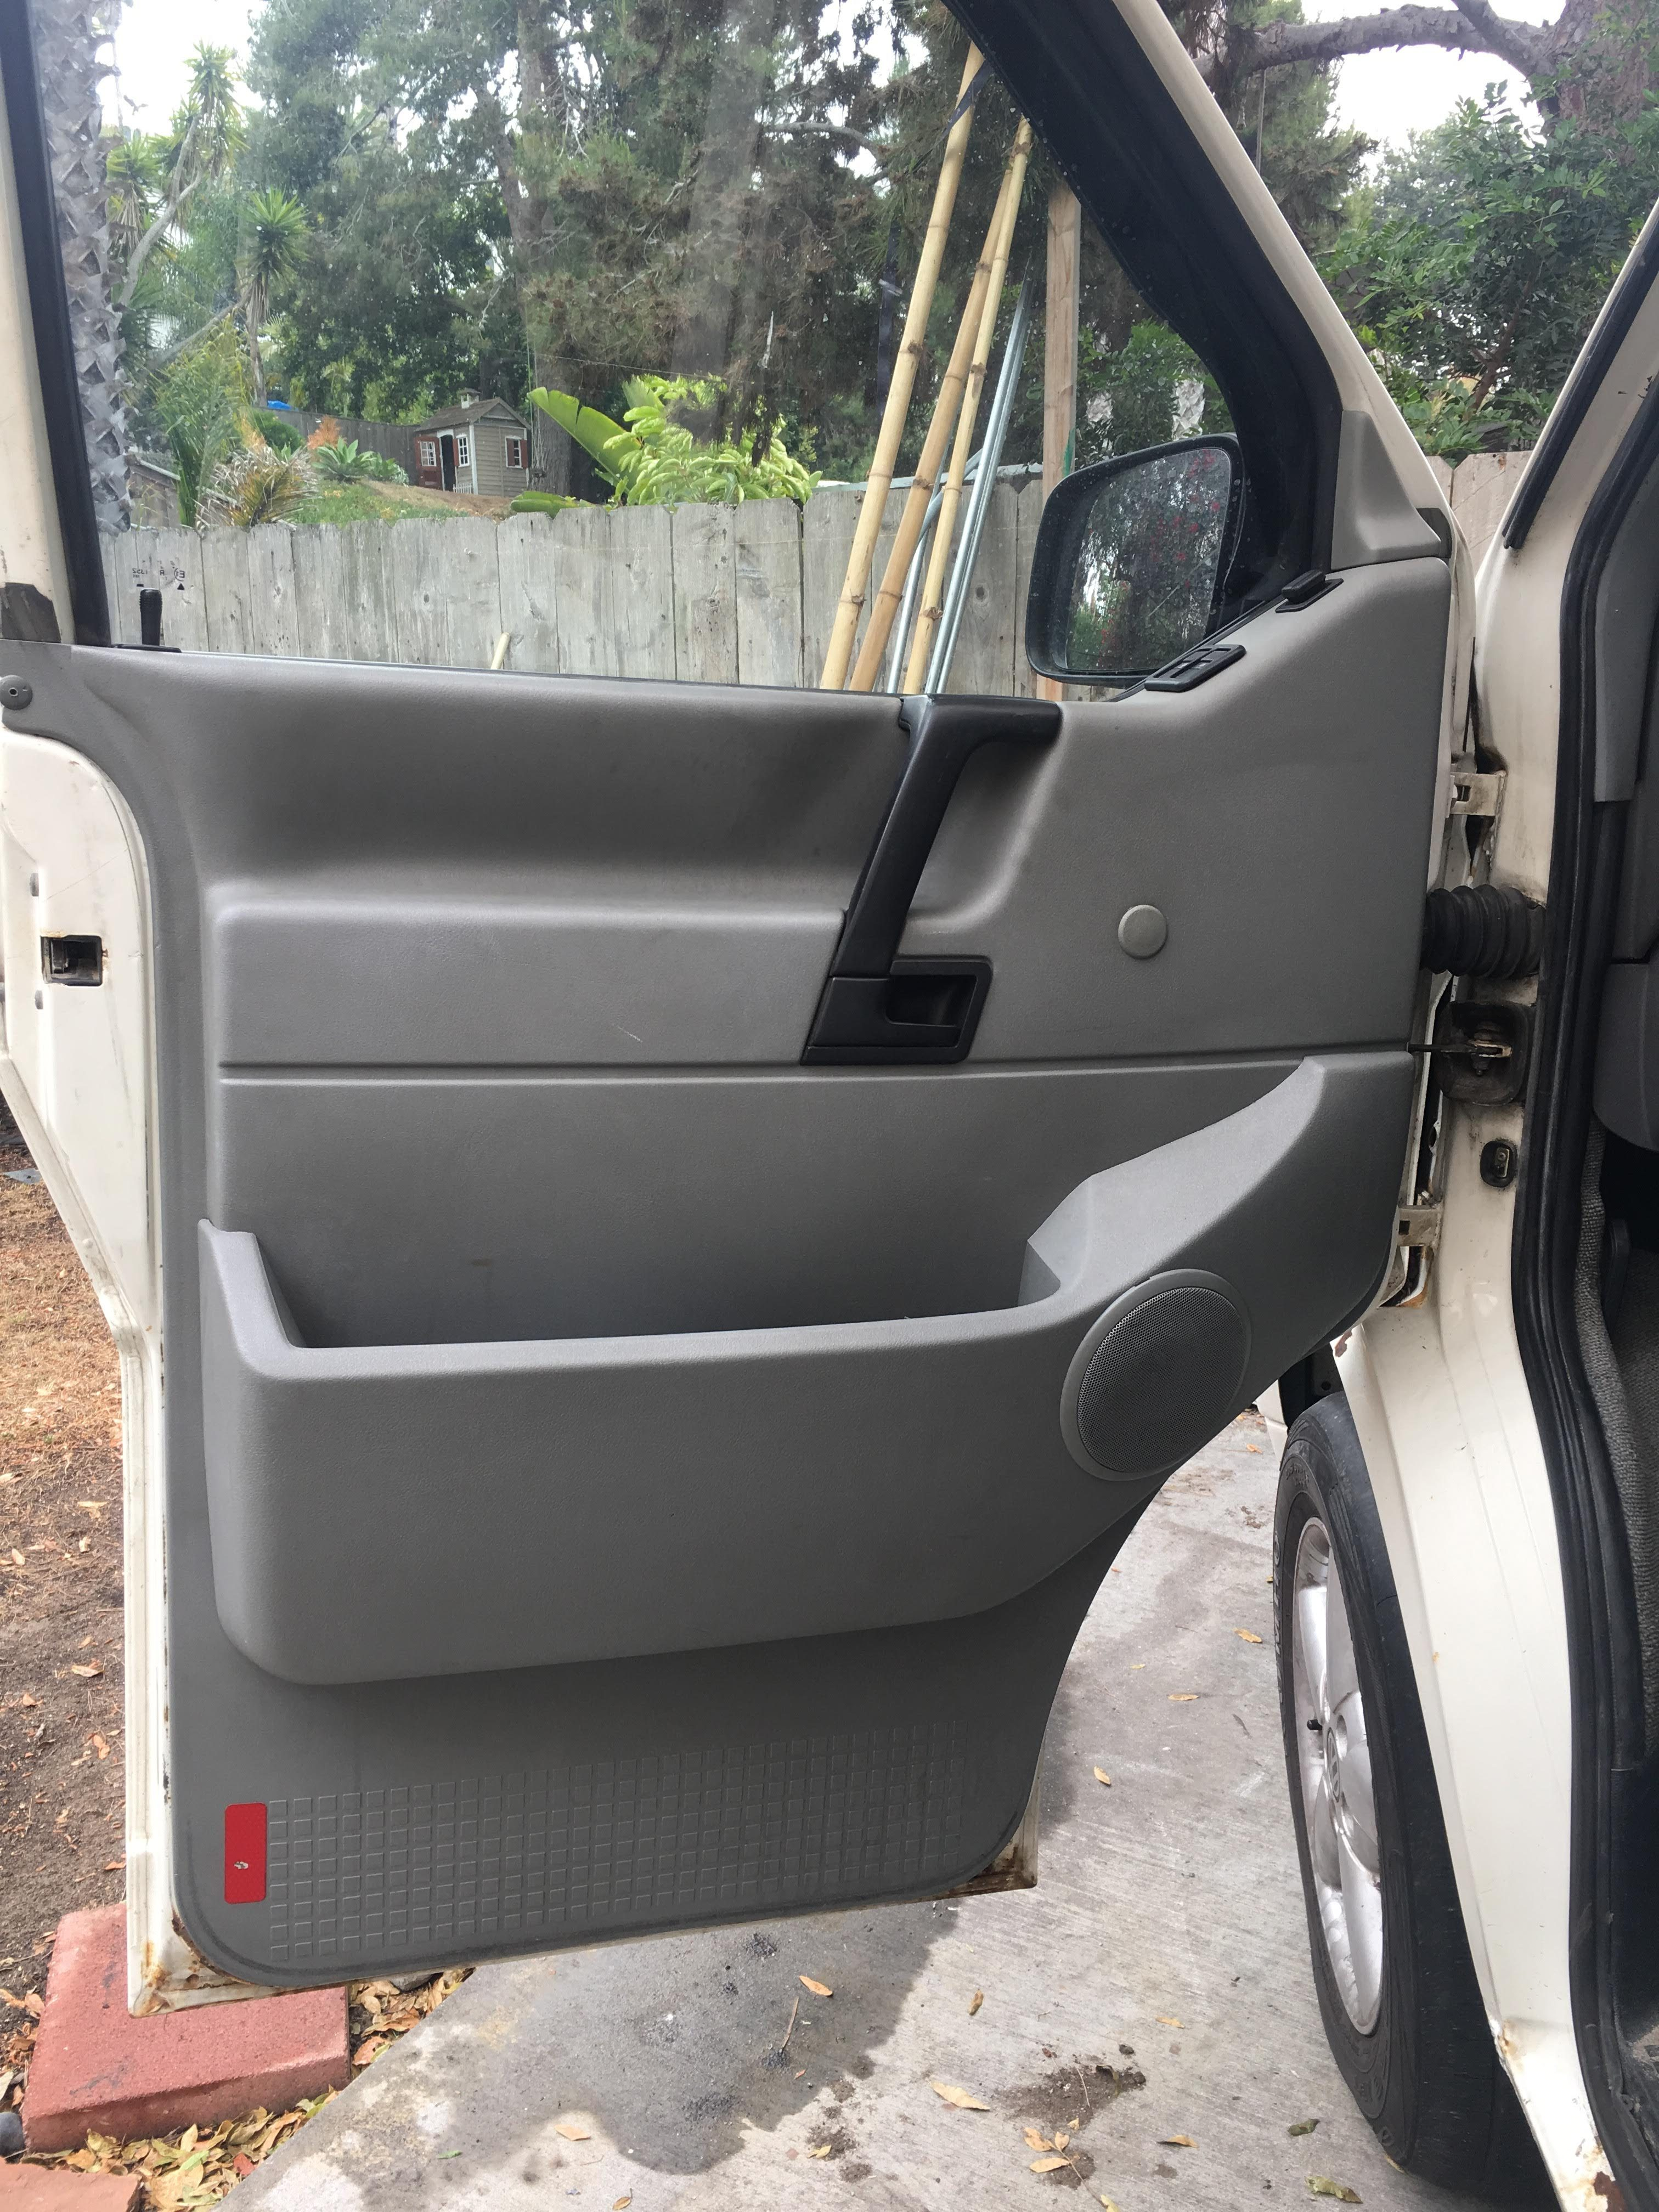 New (used) door cards